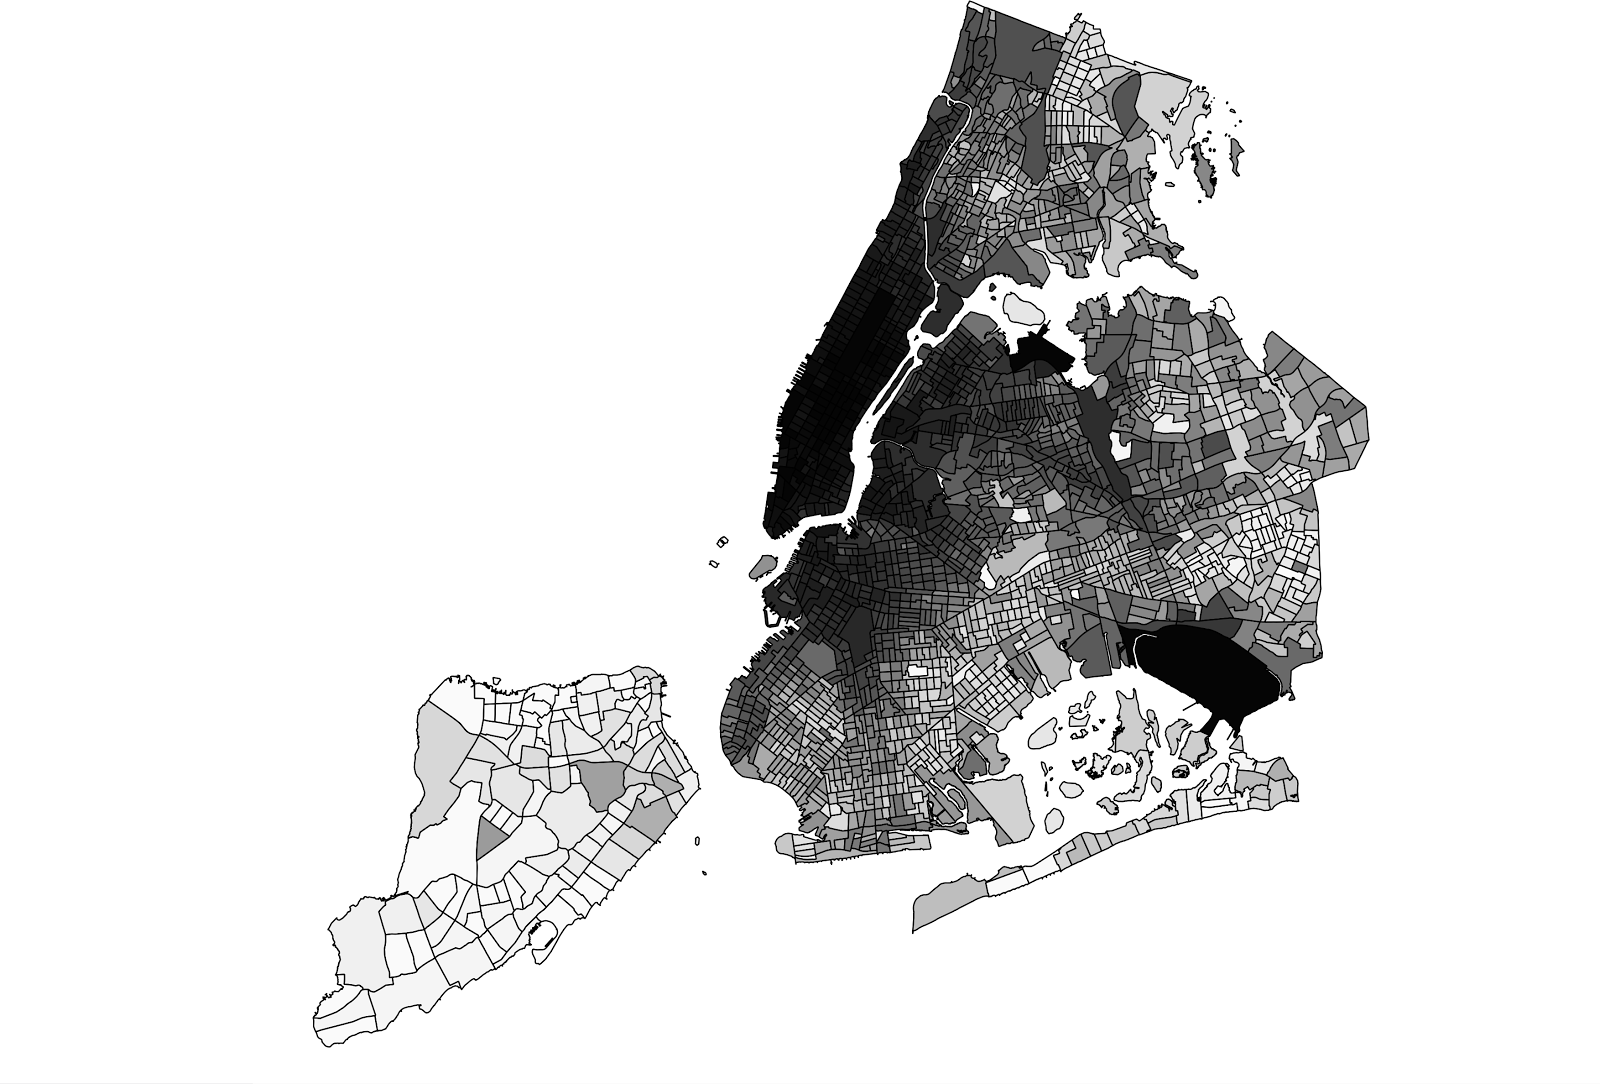 The map shows New York City, divided up by census tract. Darker census tracts have a high number of drop offs, while lighter ones have less.